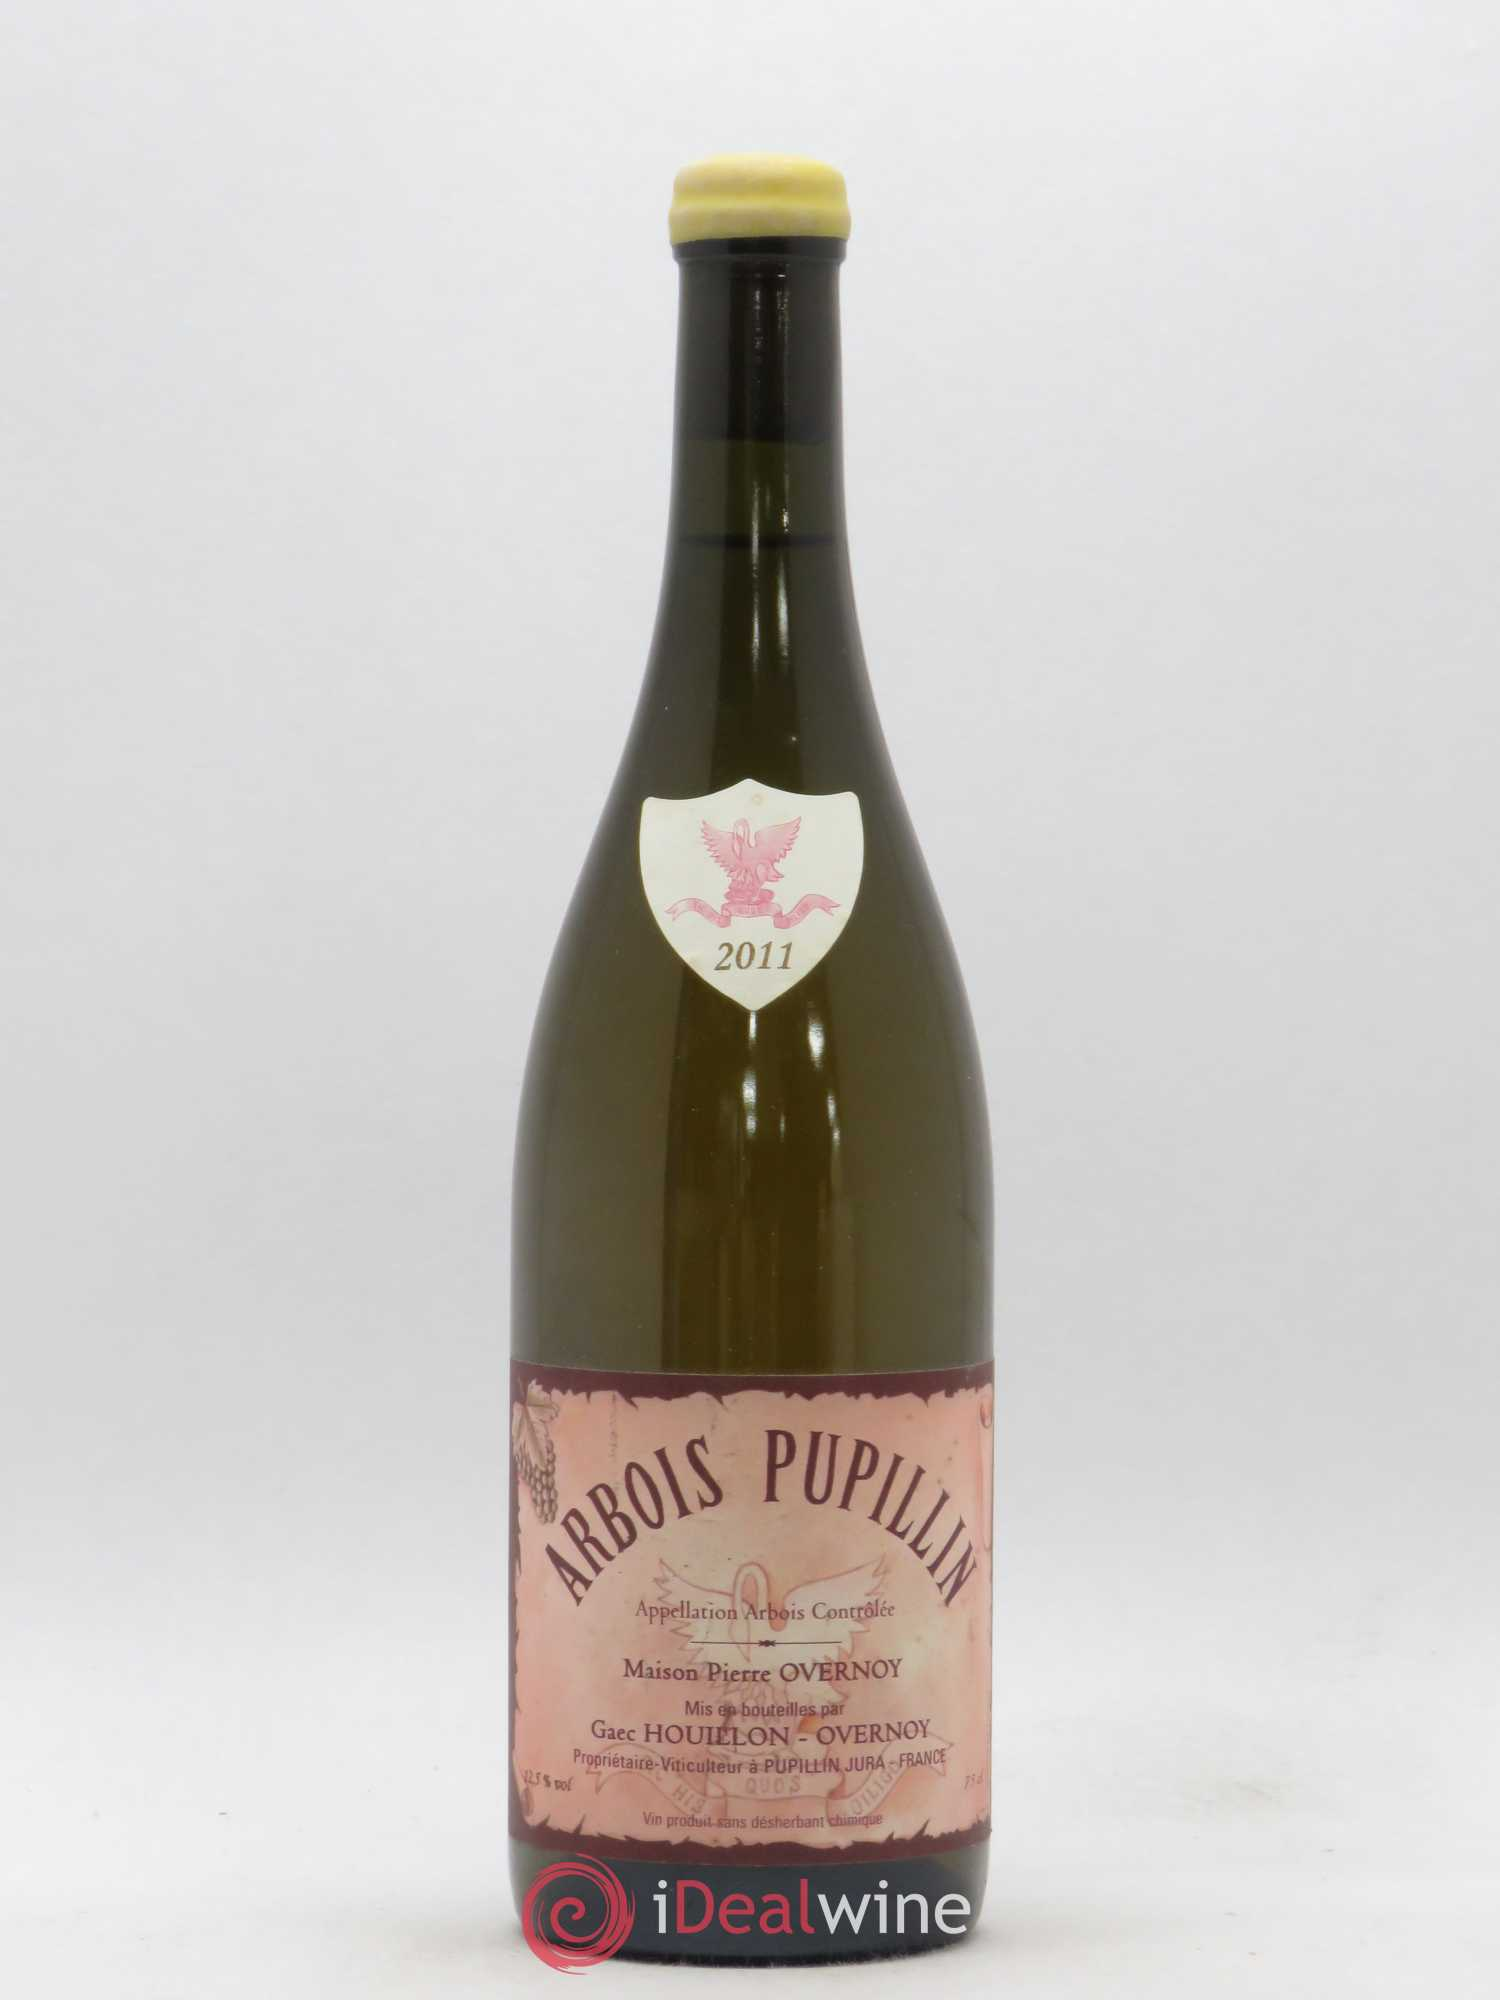 Arbois Pupillin Savagnin (cire jaune) Overnoy-Houillon (Domaine)  2011 - Lot of 1 Bottle